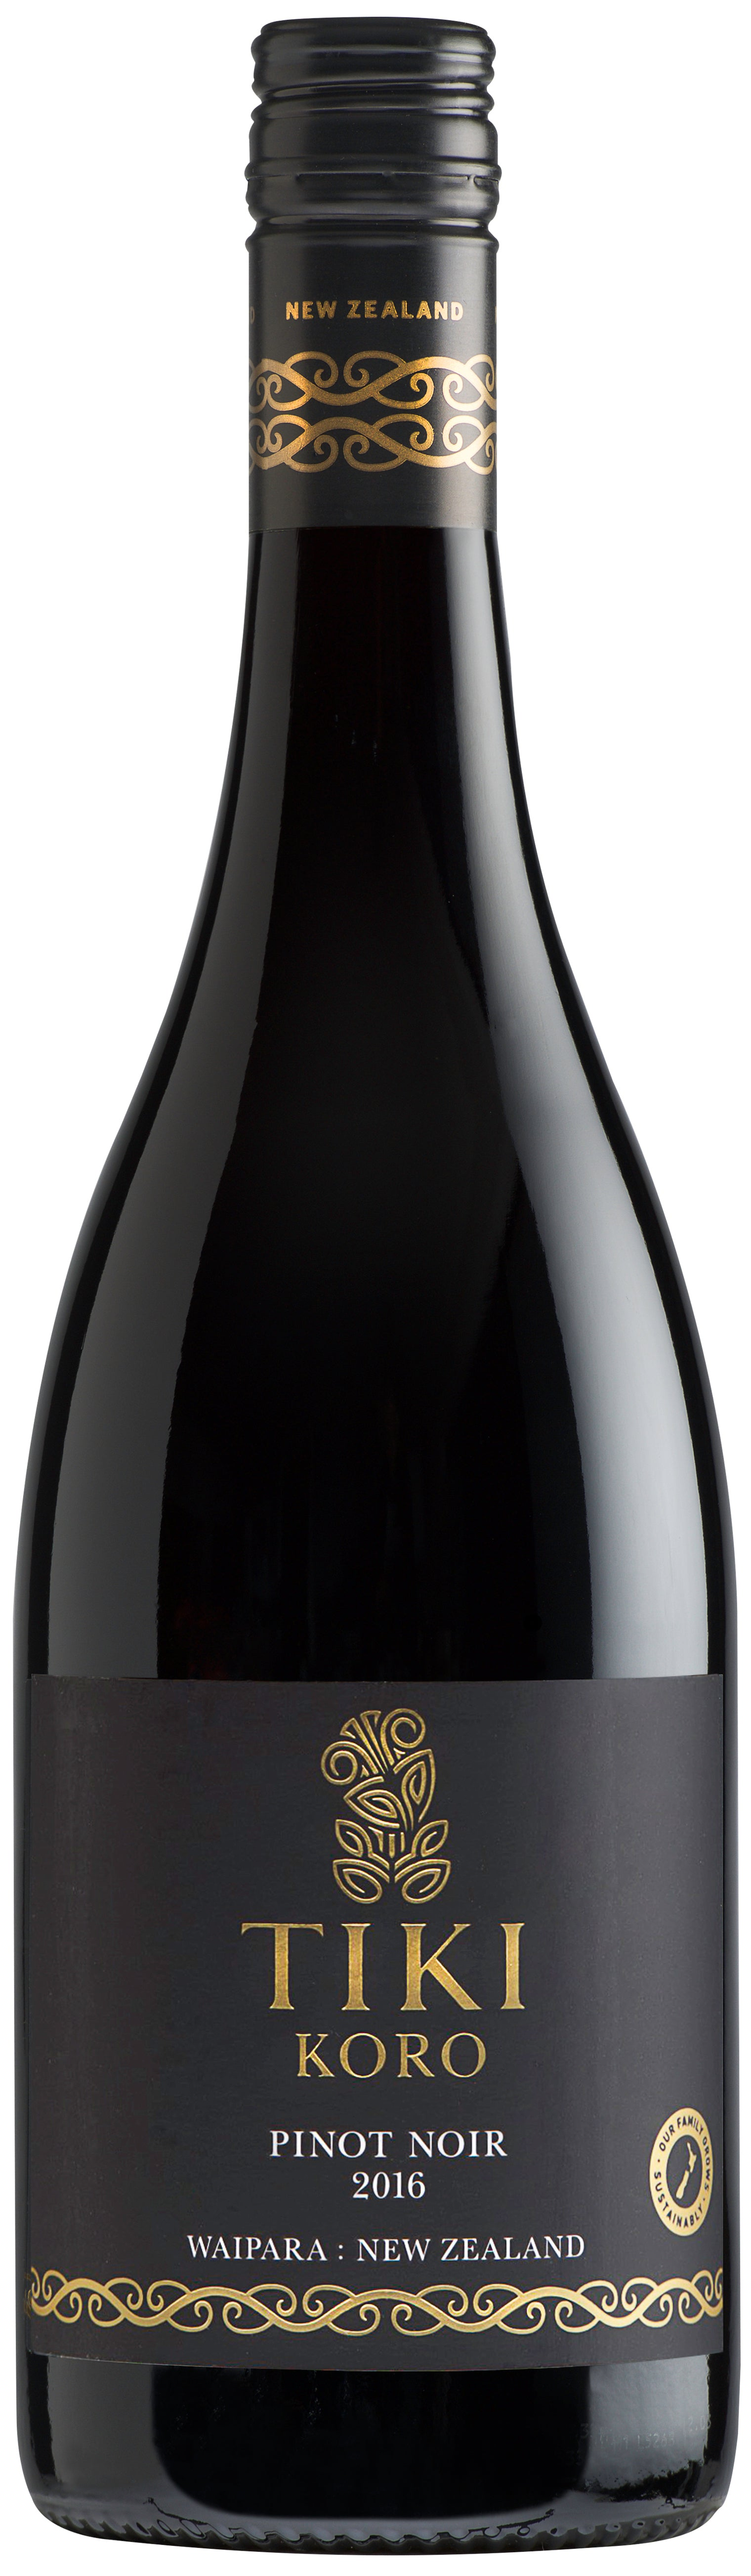 Tiki KORO Waipara Pinot Noir 2016 - $35 a bottle - $210 for a 6 pack